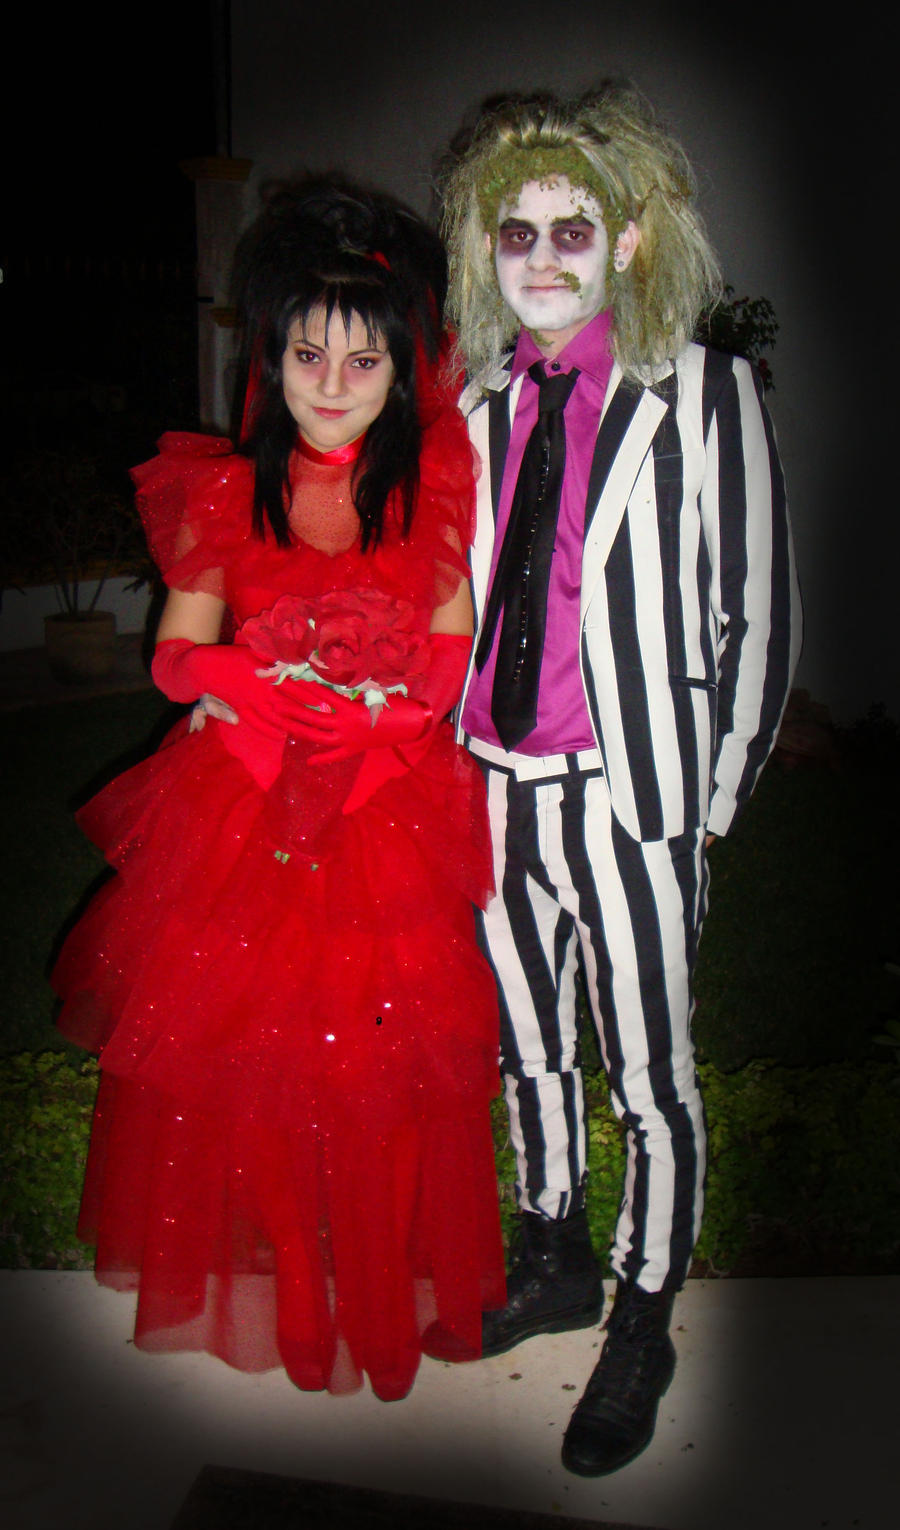 ... Lydia and Beetlejuice by Lawliet-Harmony  sc 1 st  Lawliet-Harmony - DeviantArt & Lydia and Beetlejuice by Lawliet-Harmony on DeviantArt